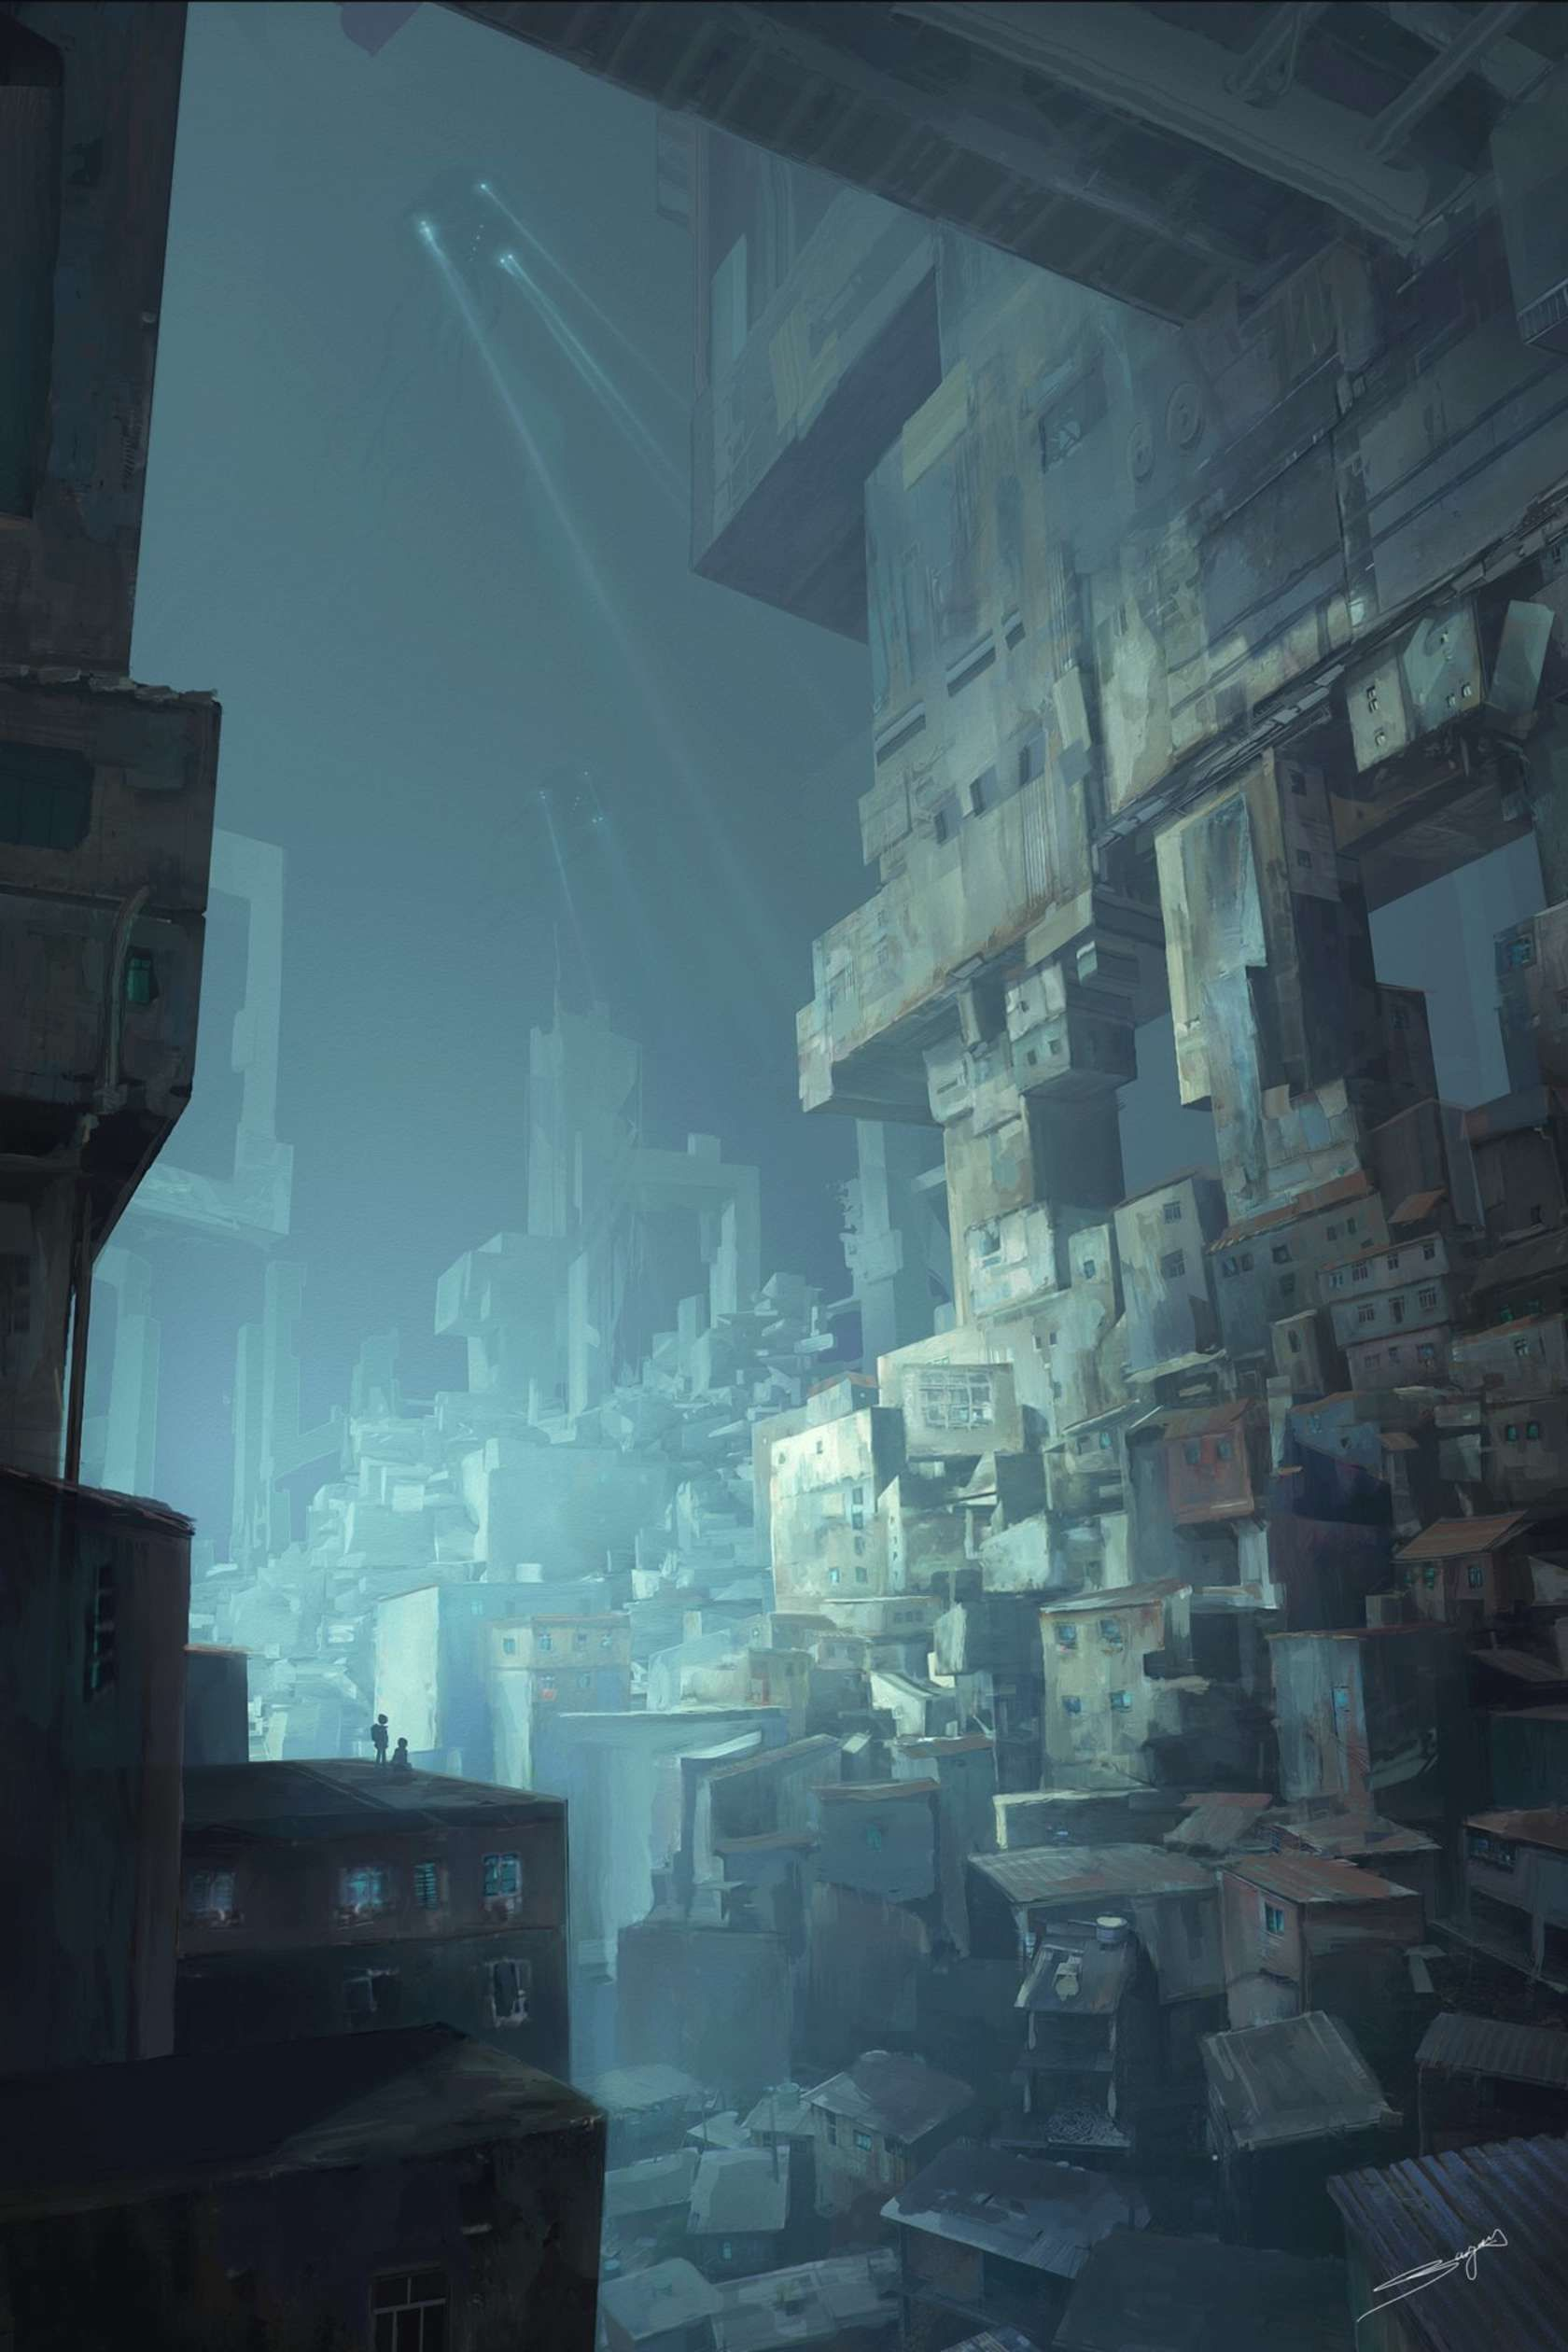 Dreamscapes: 8 Imaginary Cities from the Mystical Minds of Concept Artists